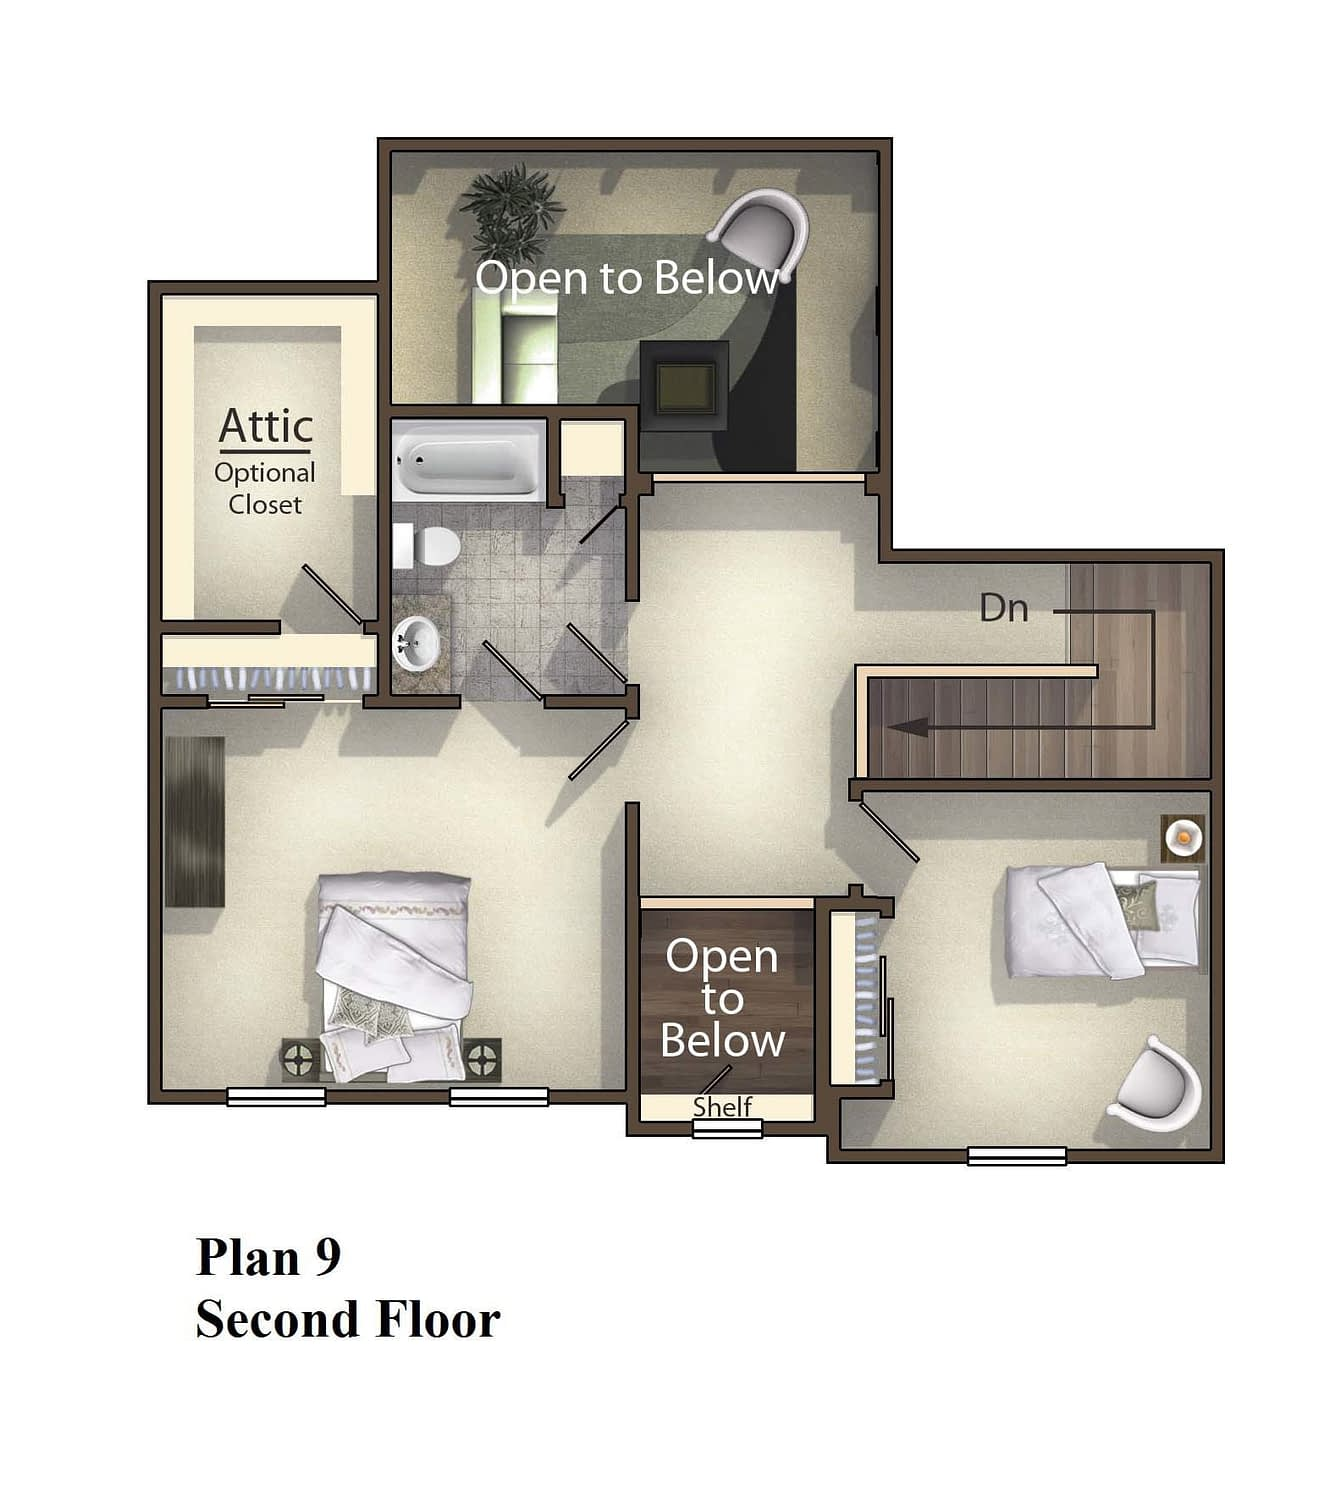 plan-9-second-floor